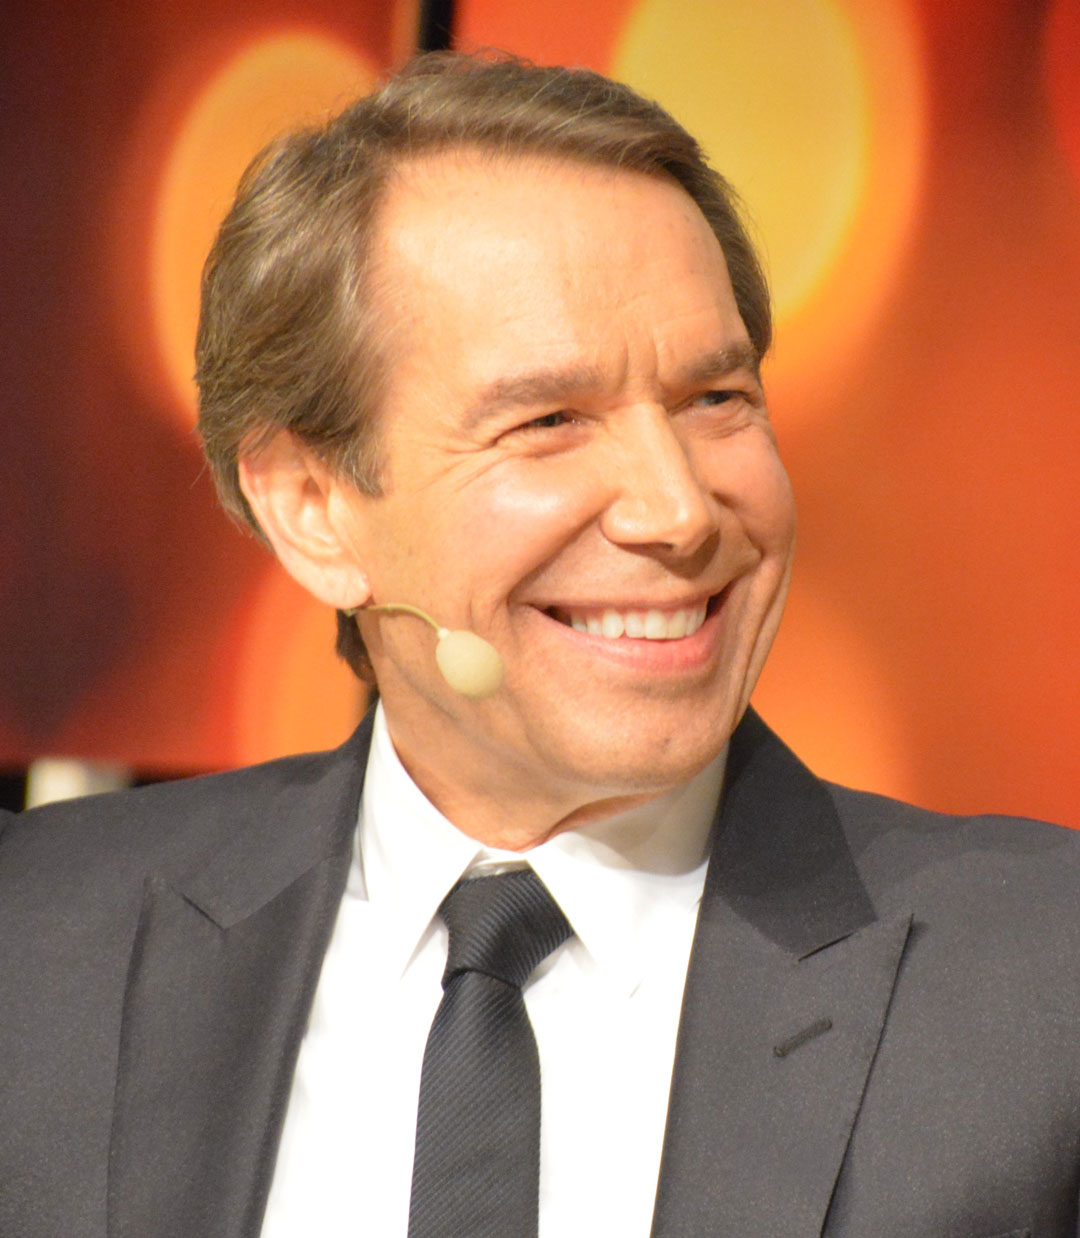 The Lives of Artists – Jeff Koons